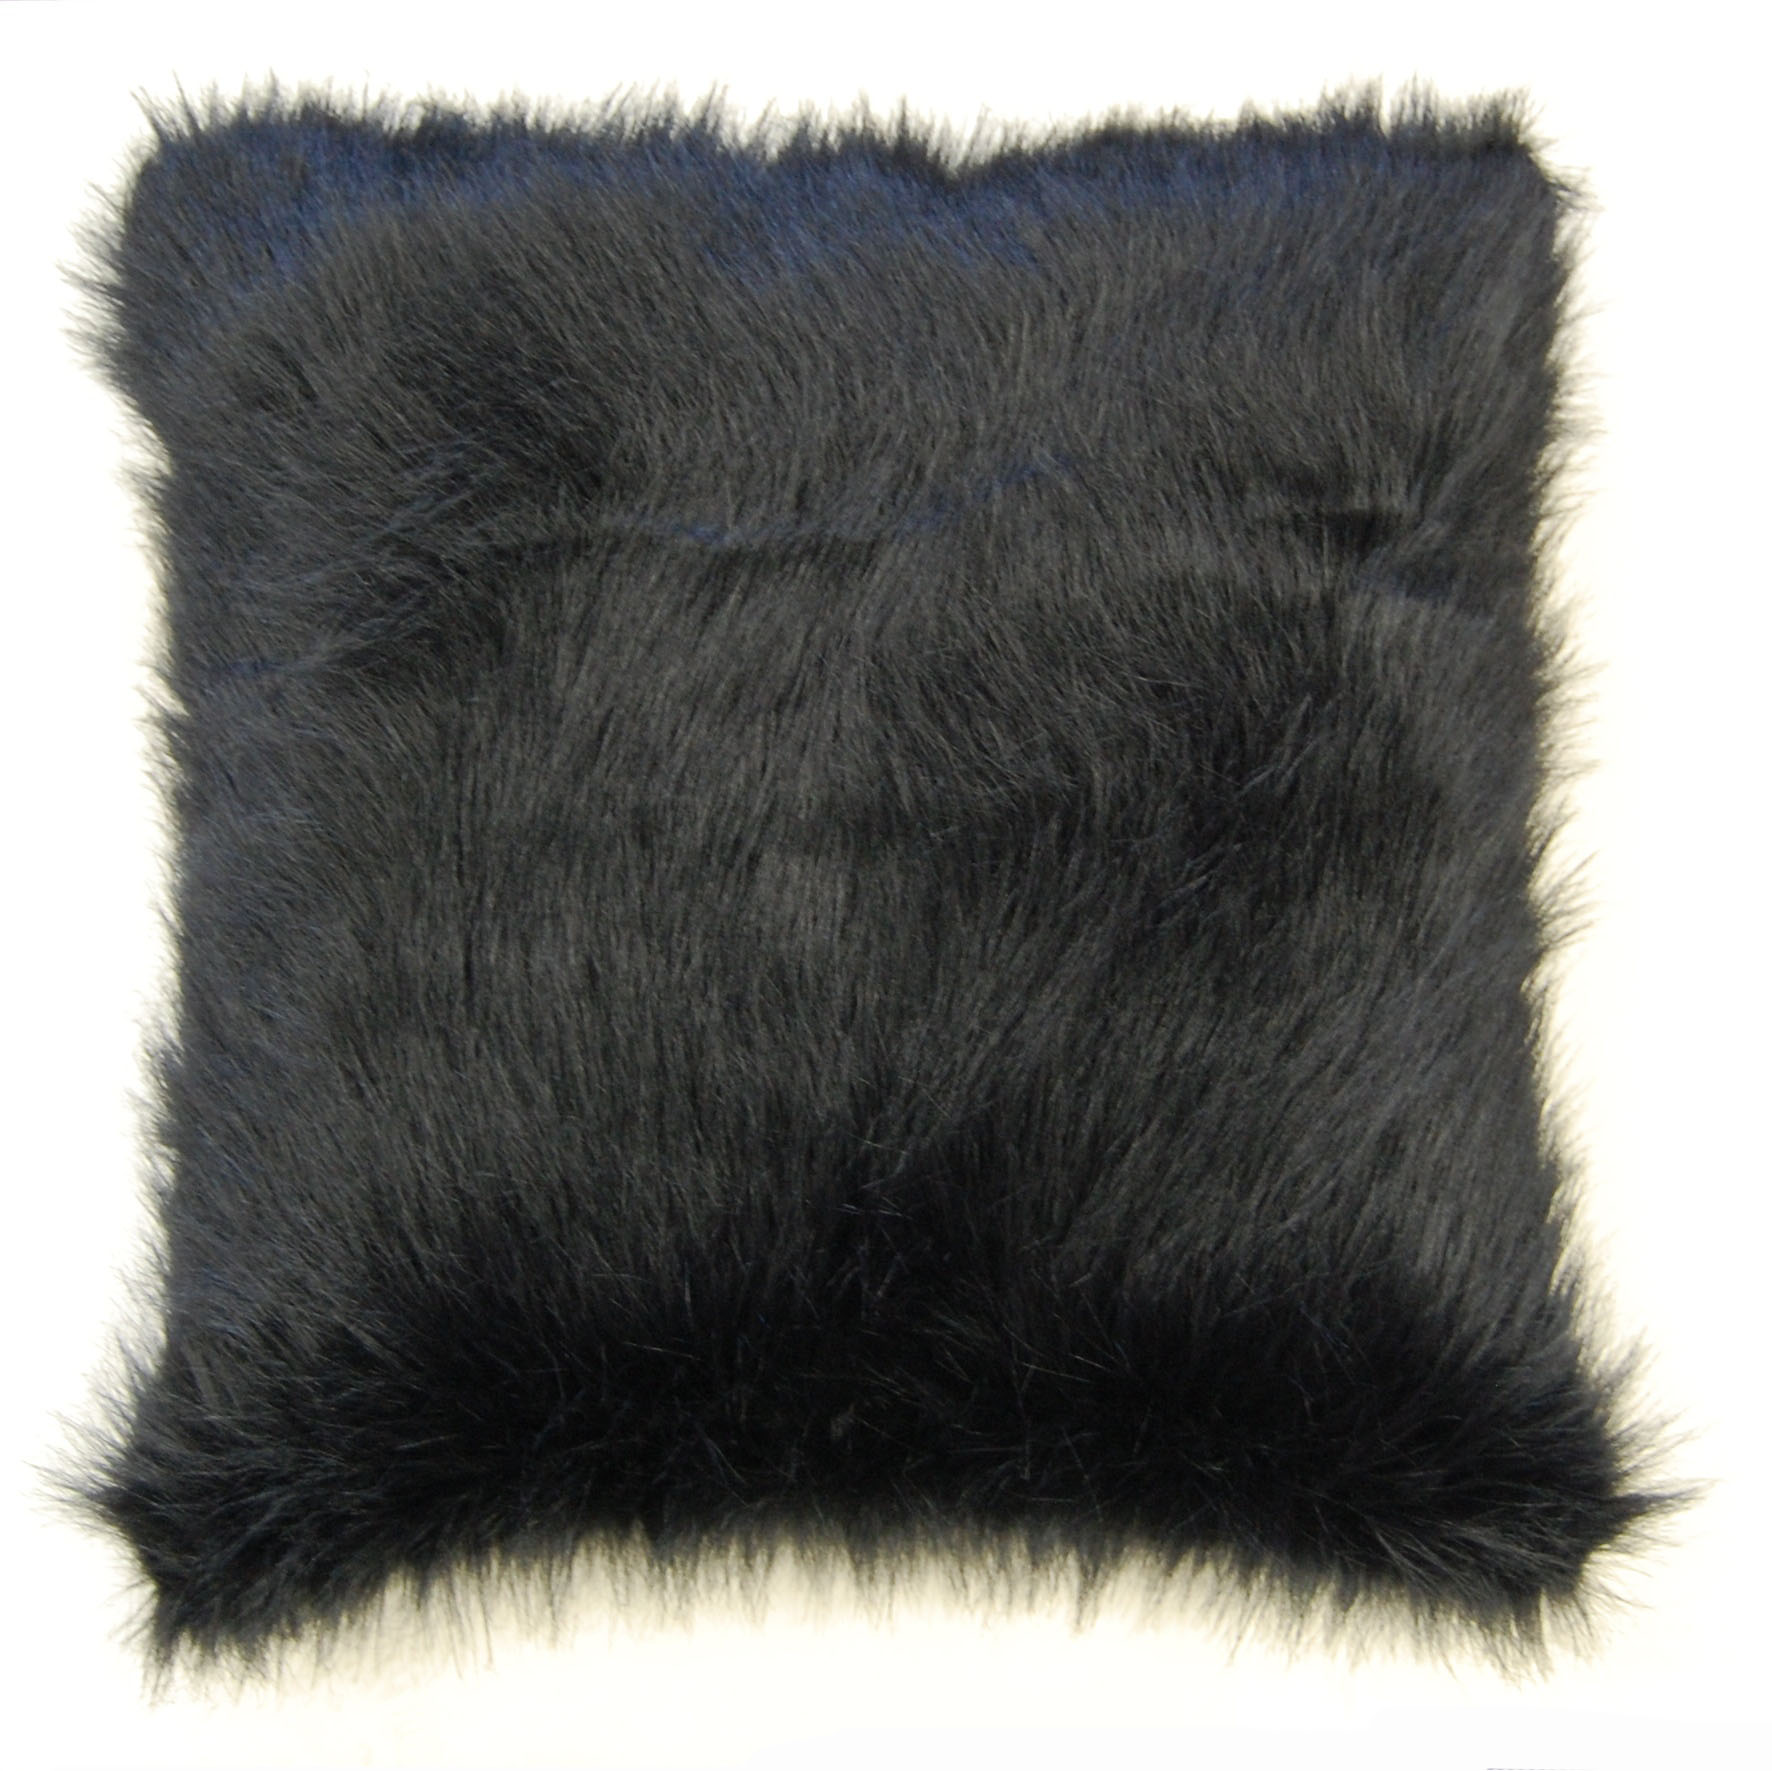 With a range of fur types including fox, beaver, coyote, mink, sheepskin, rabbit, Tibetan lamb and cowhide, you'll be wishing you treated yourself to a fur pillow years ago. These pillows will have you immediately appreciating how much warmth a cozy fur pillow can add to your periods of repose/5(54).